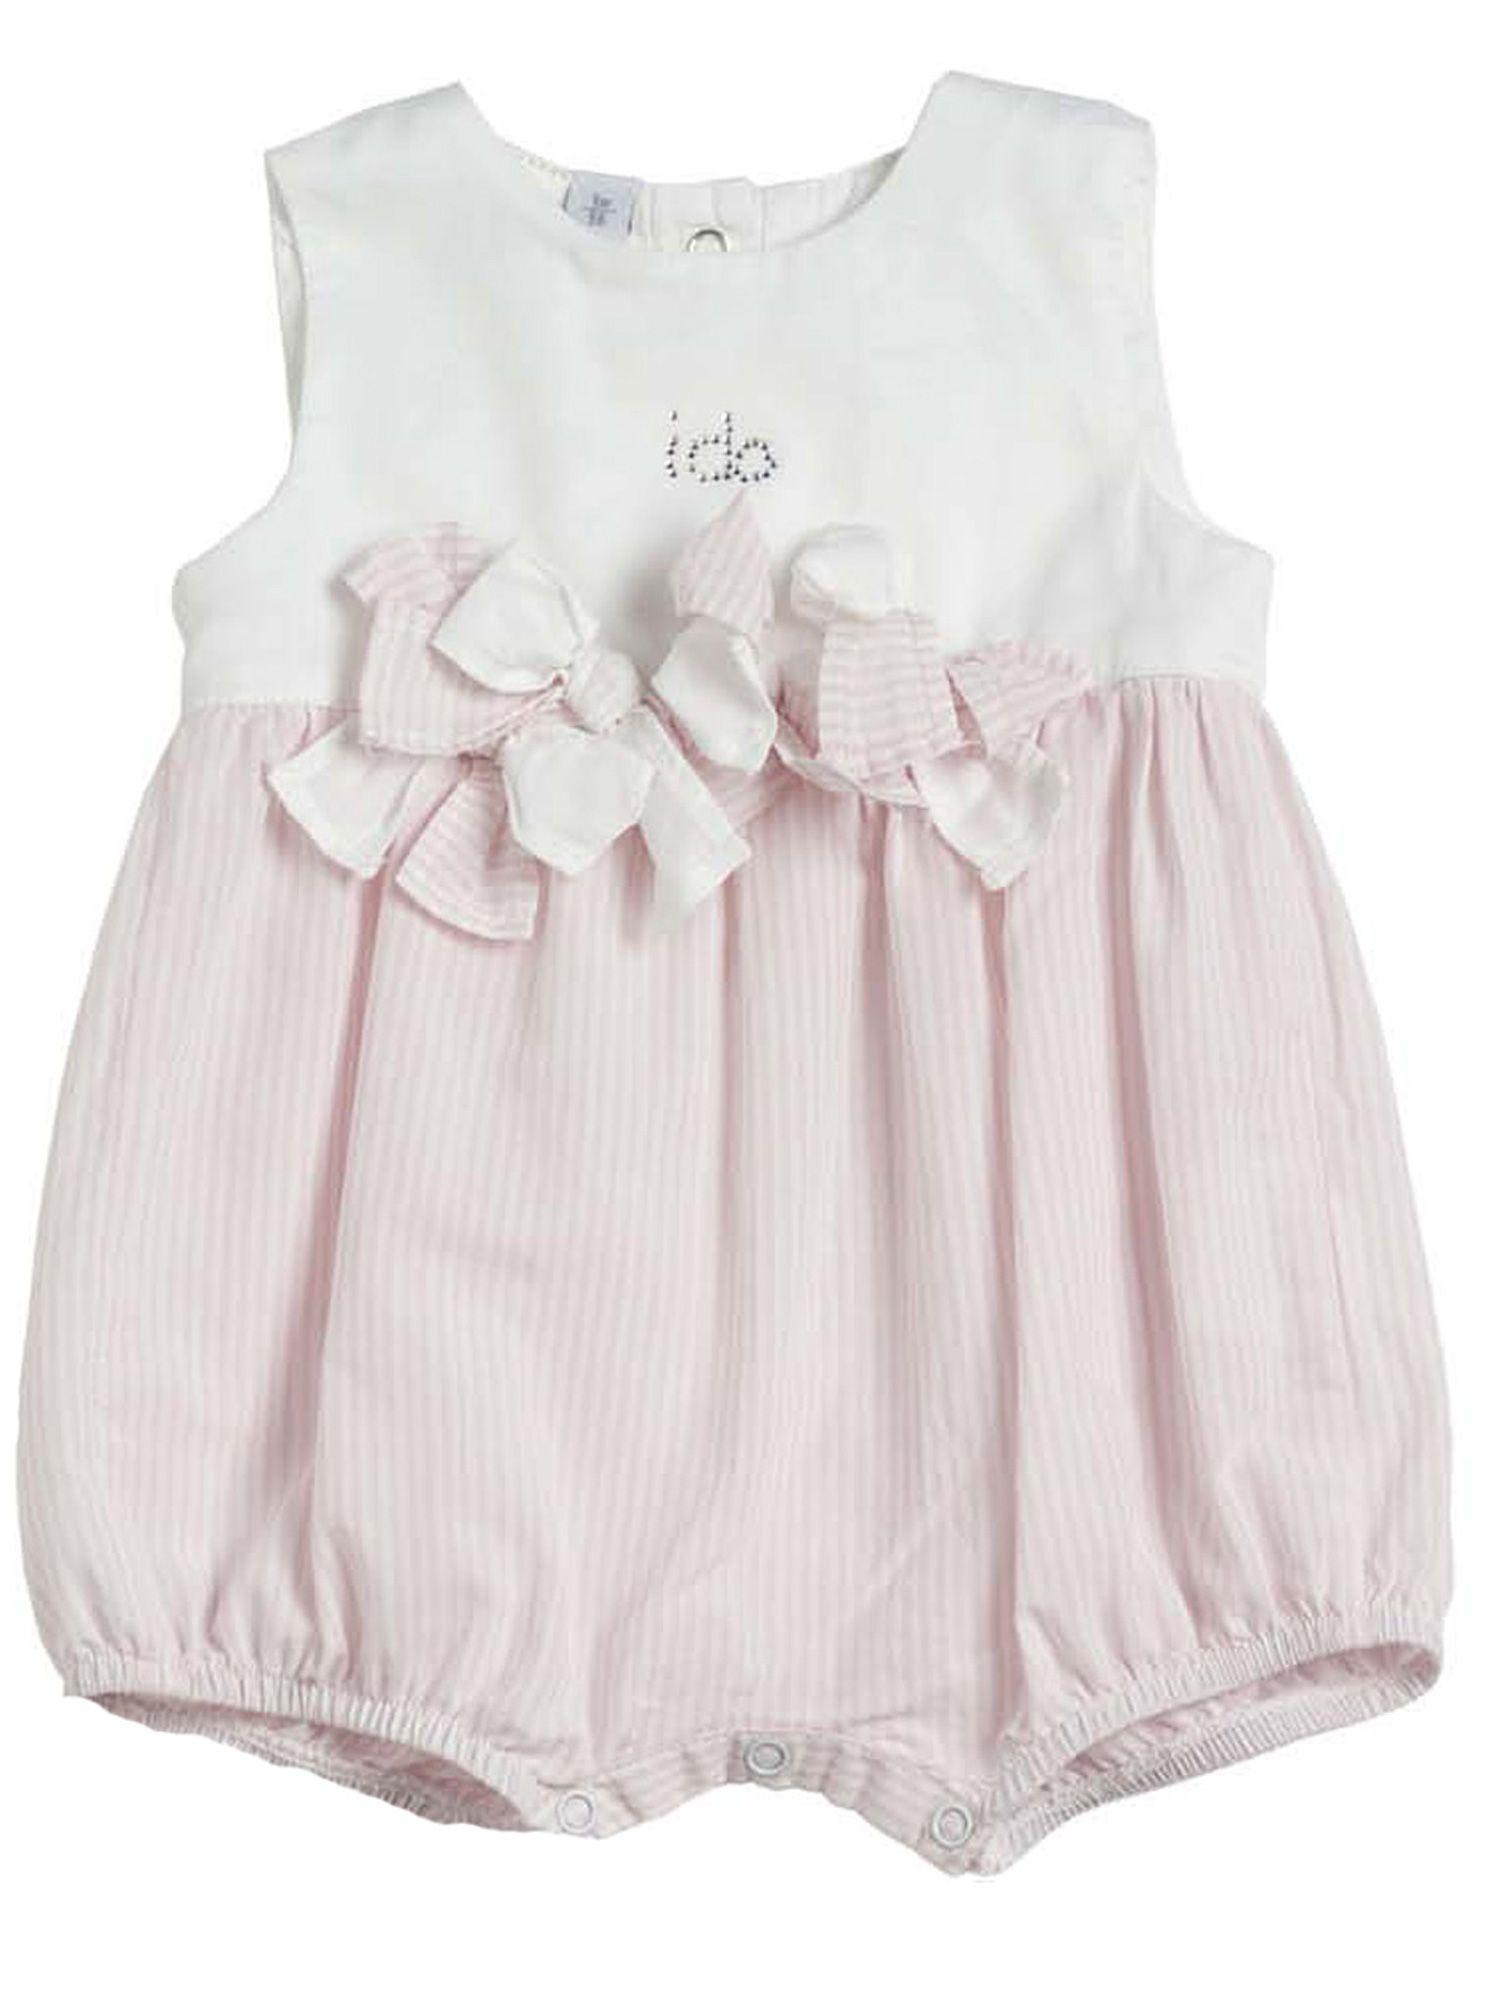 Baby girls pink cotton shorts all in one